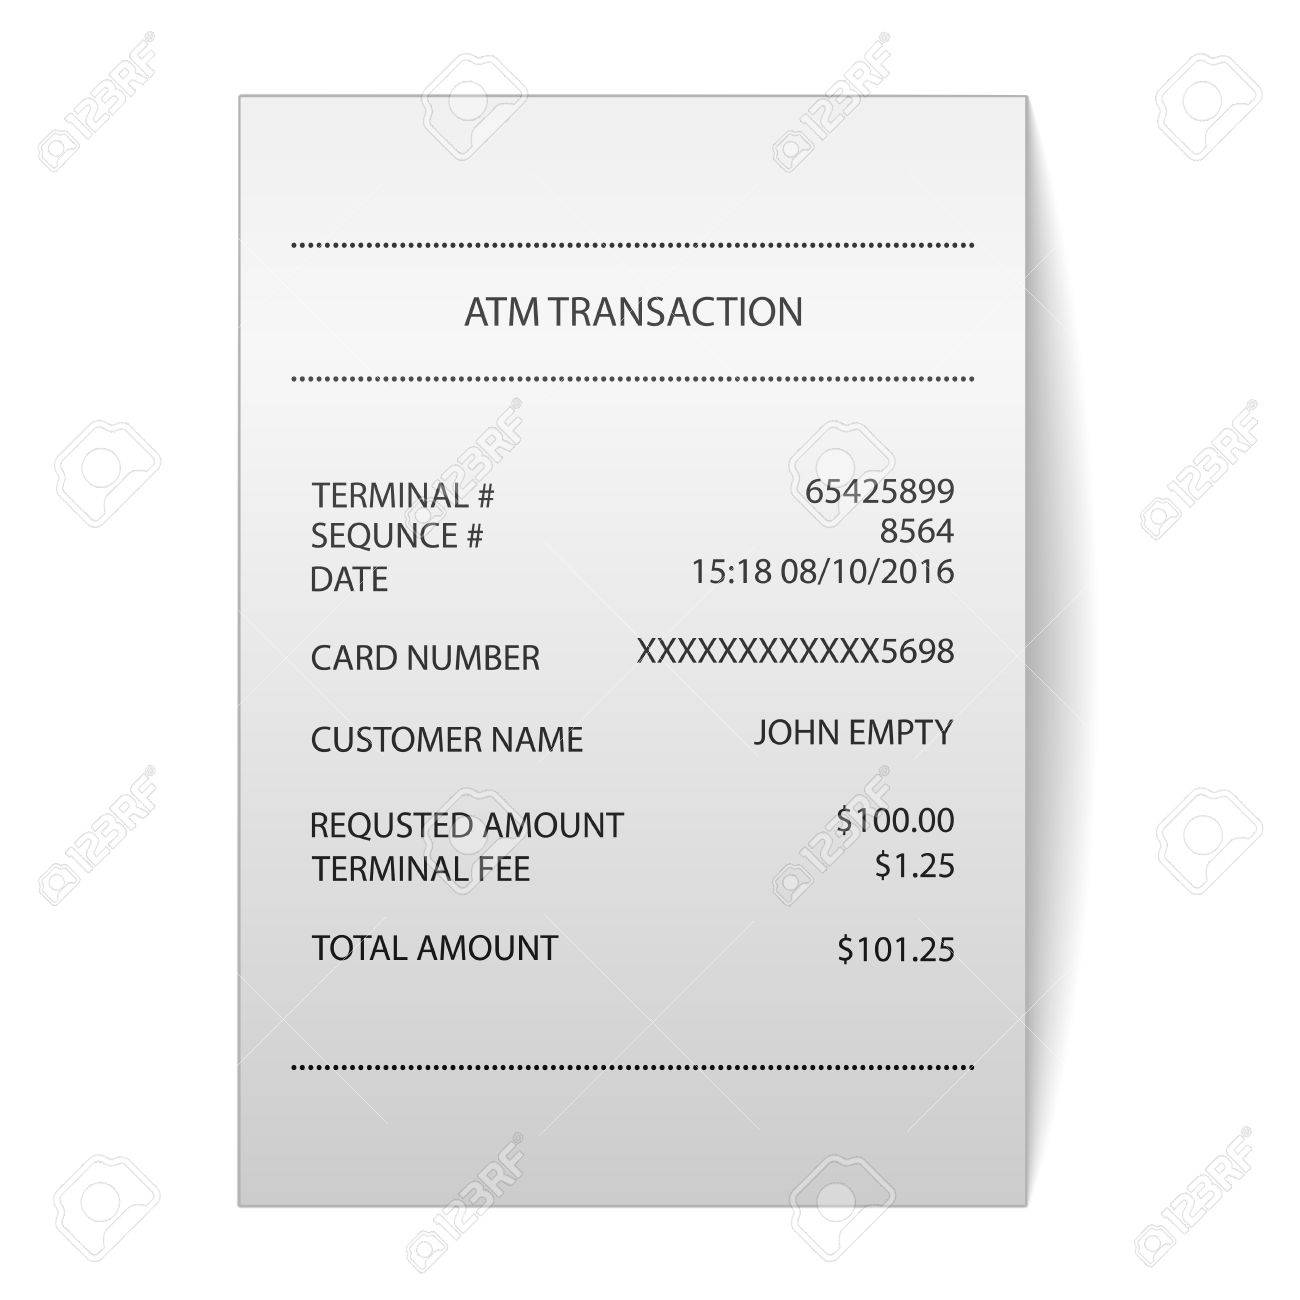 Atm Transaction Printed Paper Receipt Bill Vector Stock Vector   67968361  Bill Receipt